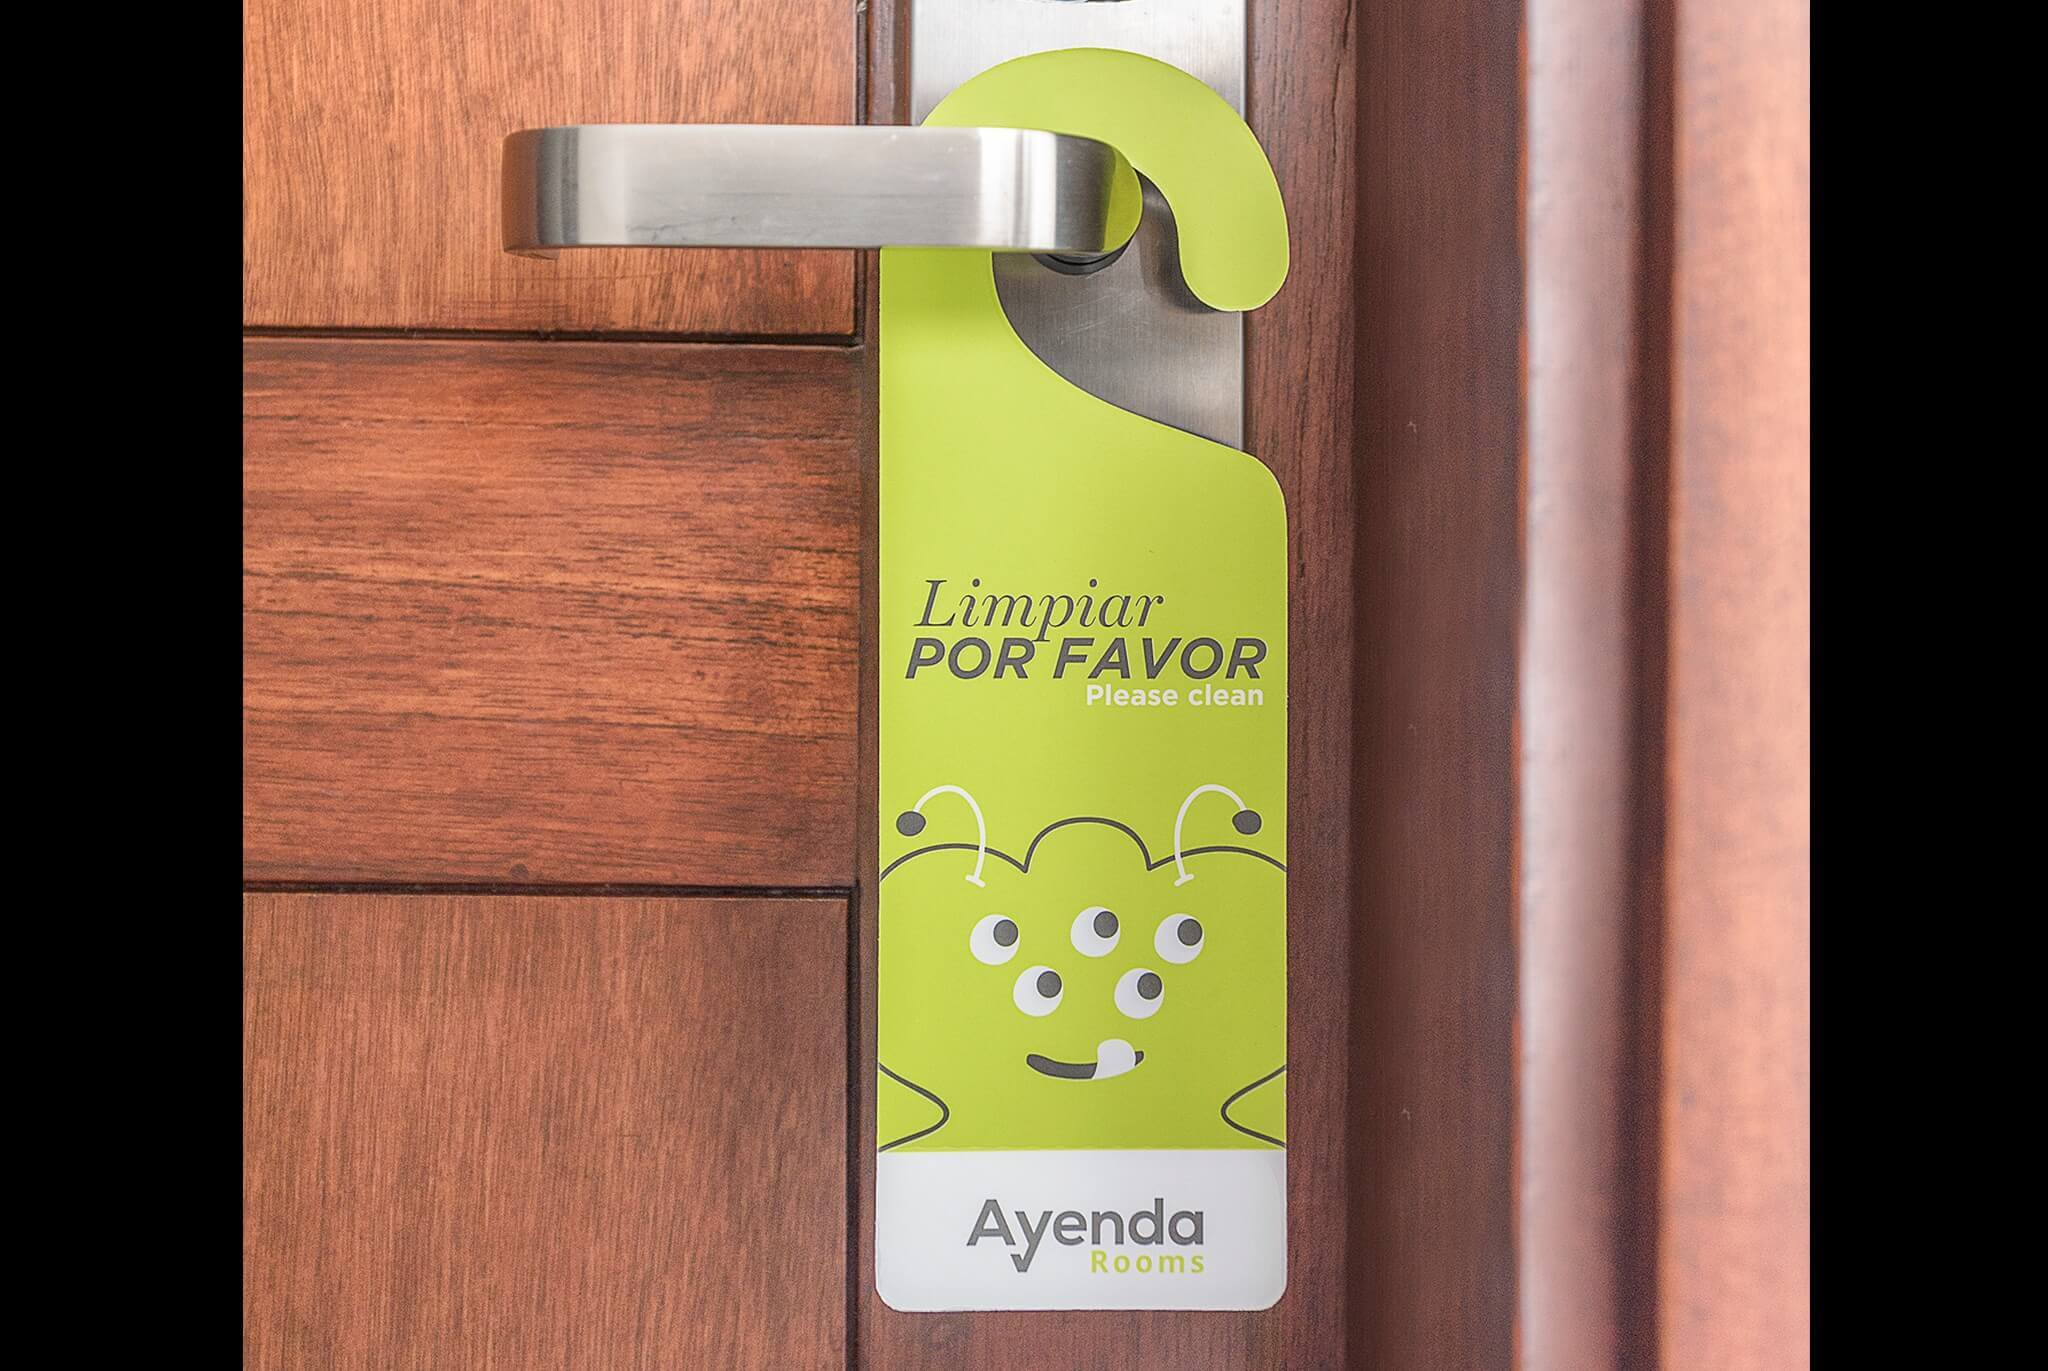 Ayenda 1111 Optimum Pereira